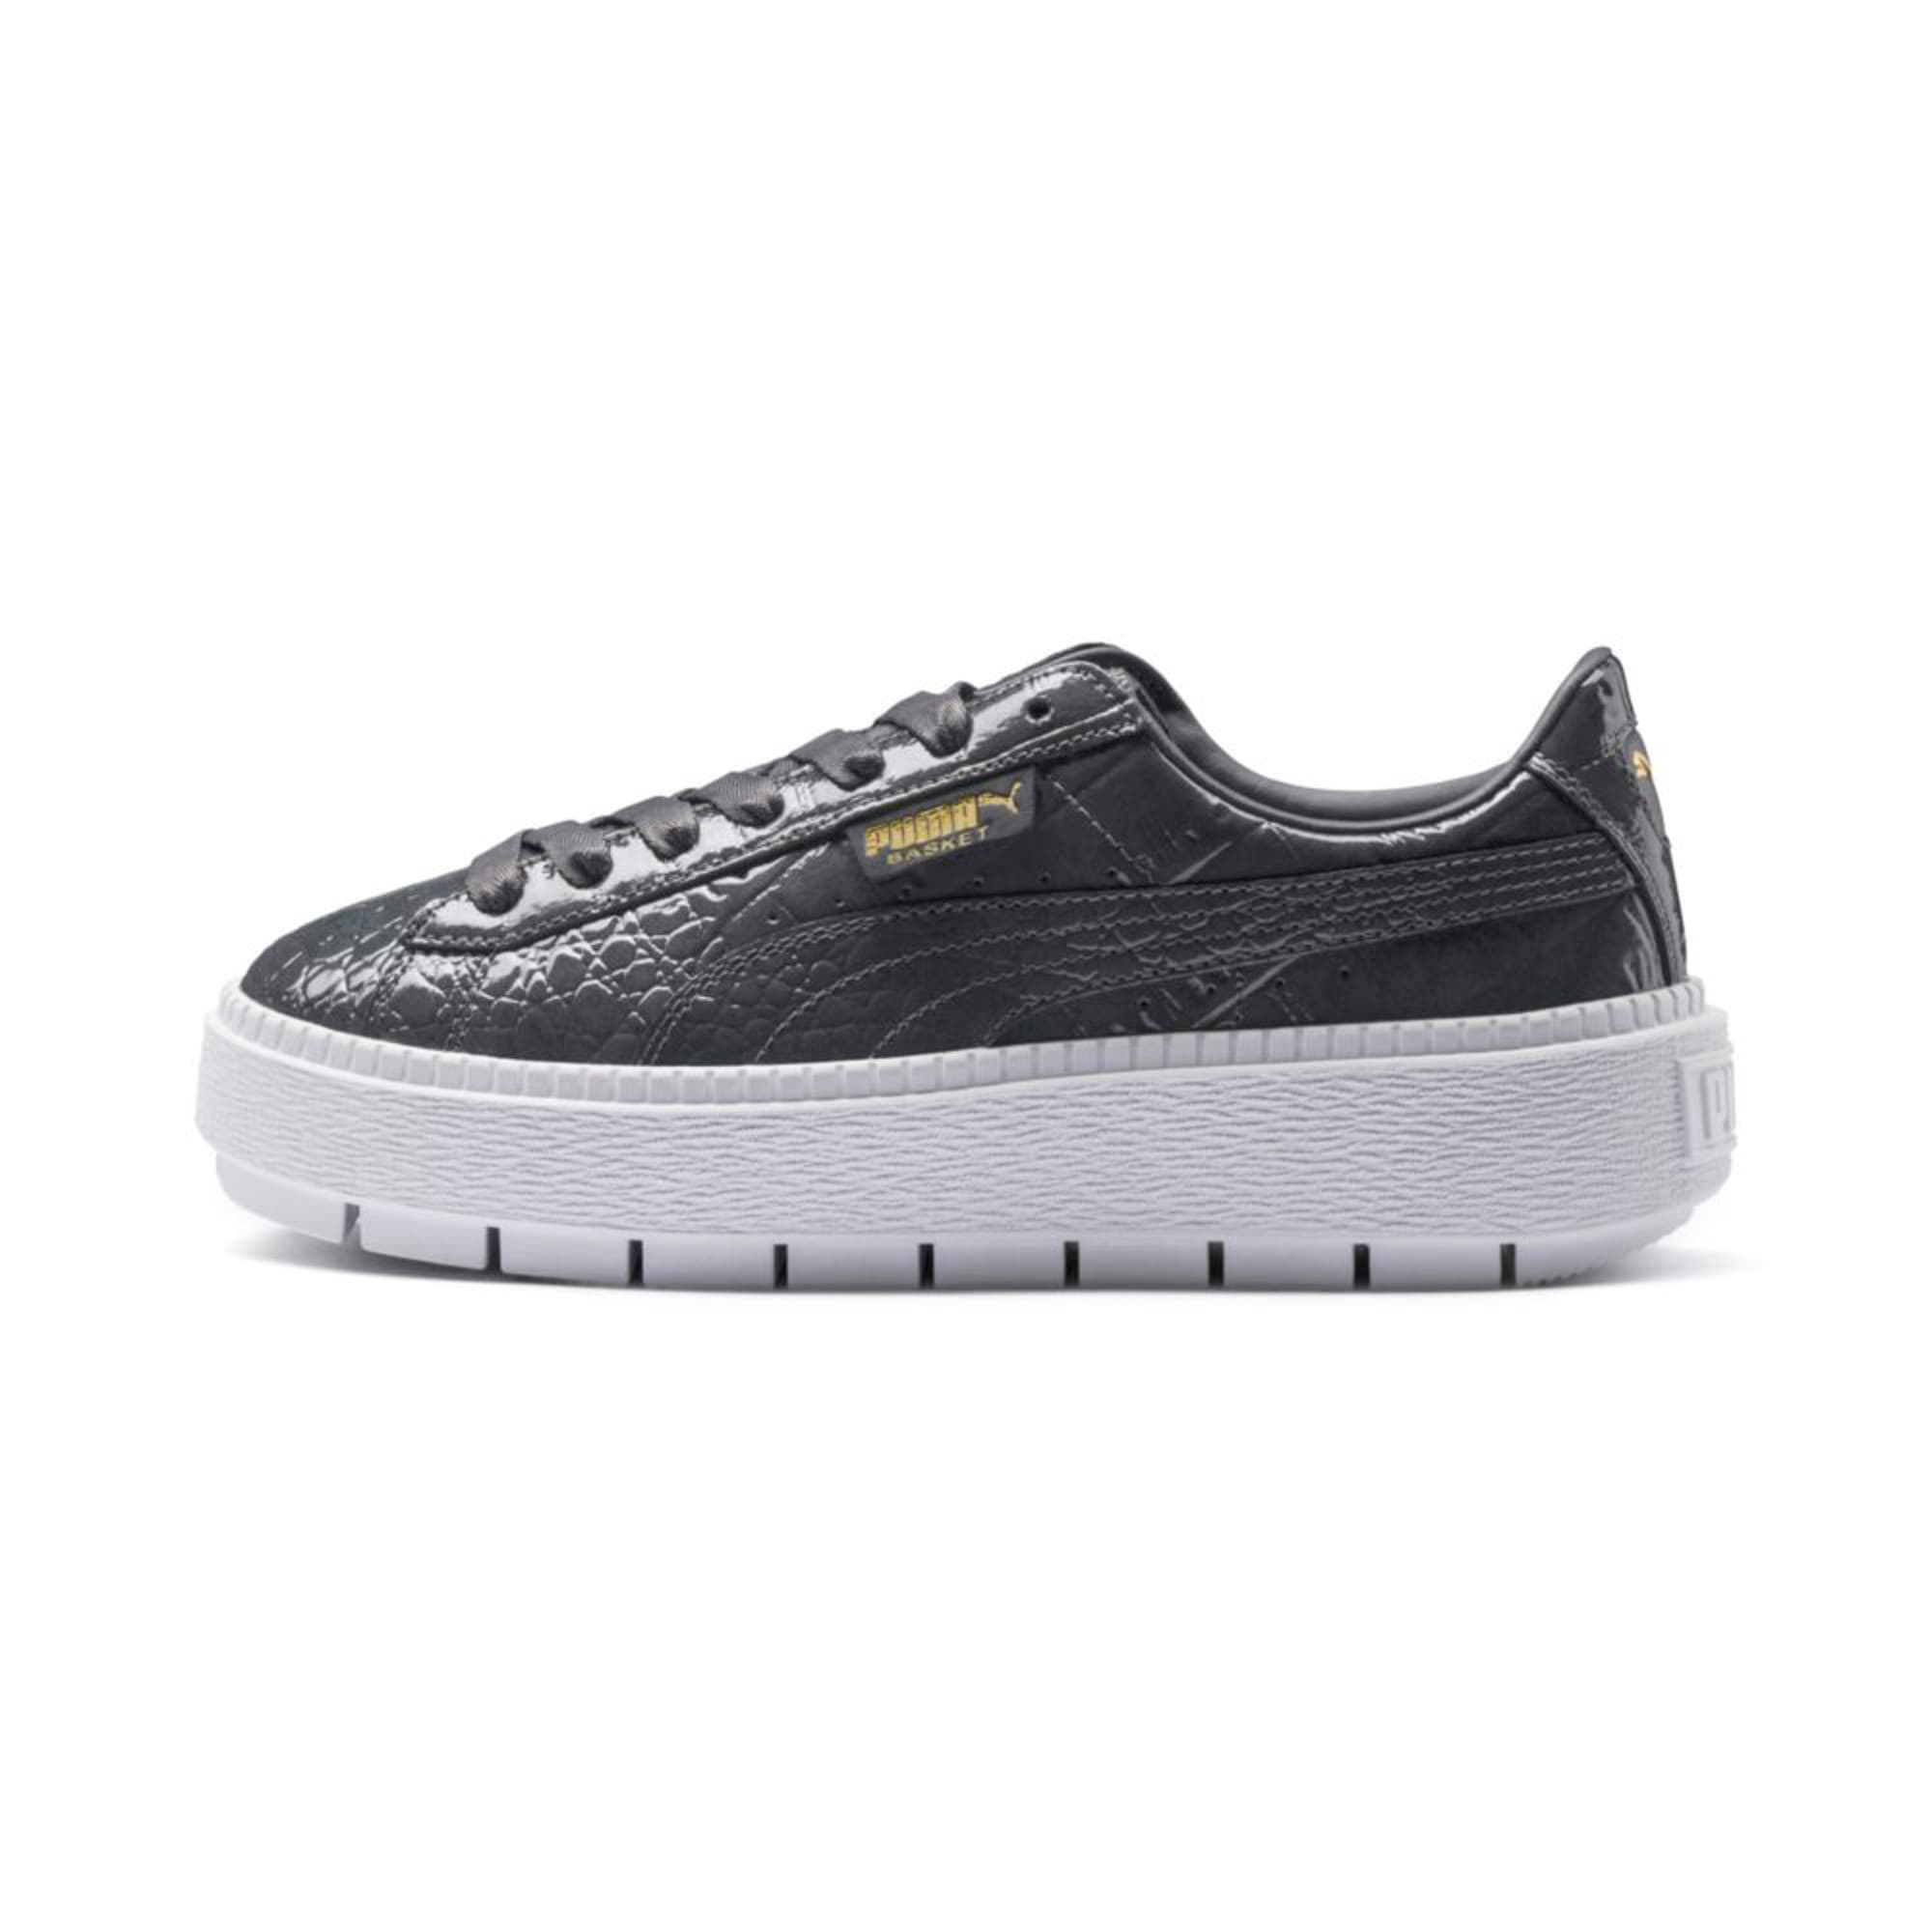 Thumbnail 1 of Platform Trace Exotic Lux Women's Trainers, Iron Gate-Iron Gate, medium-IND